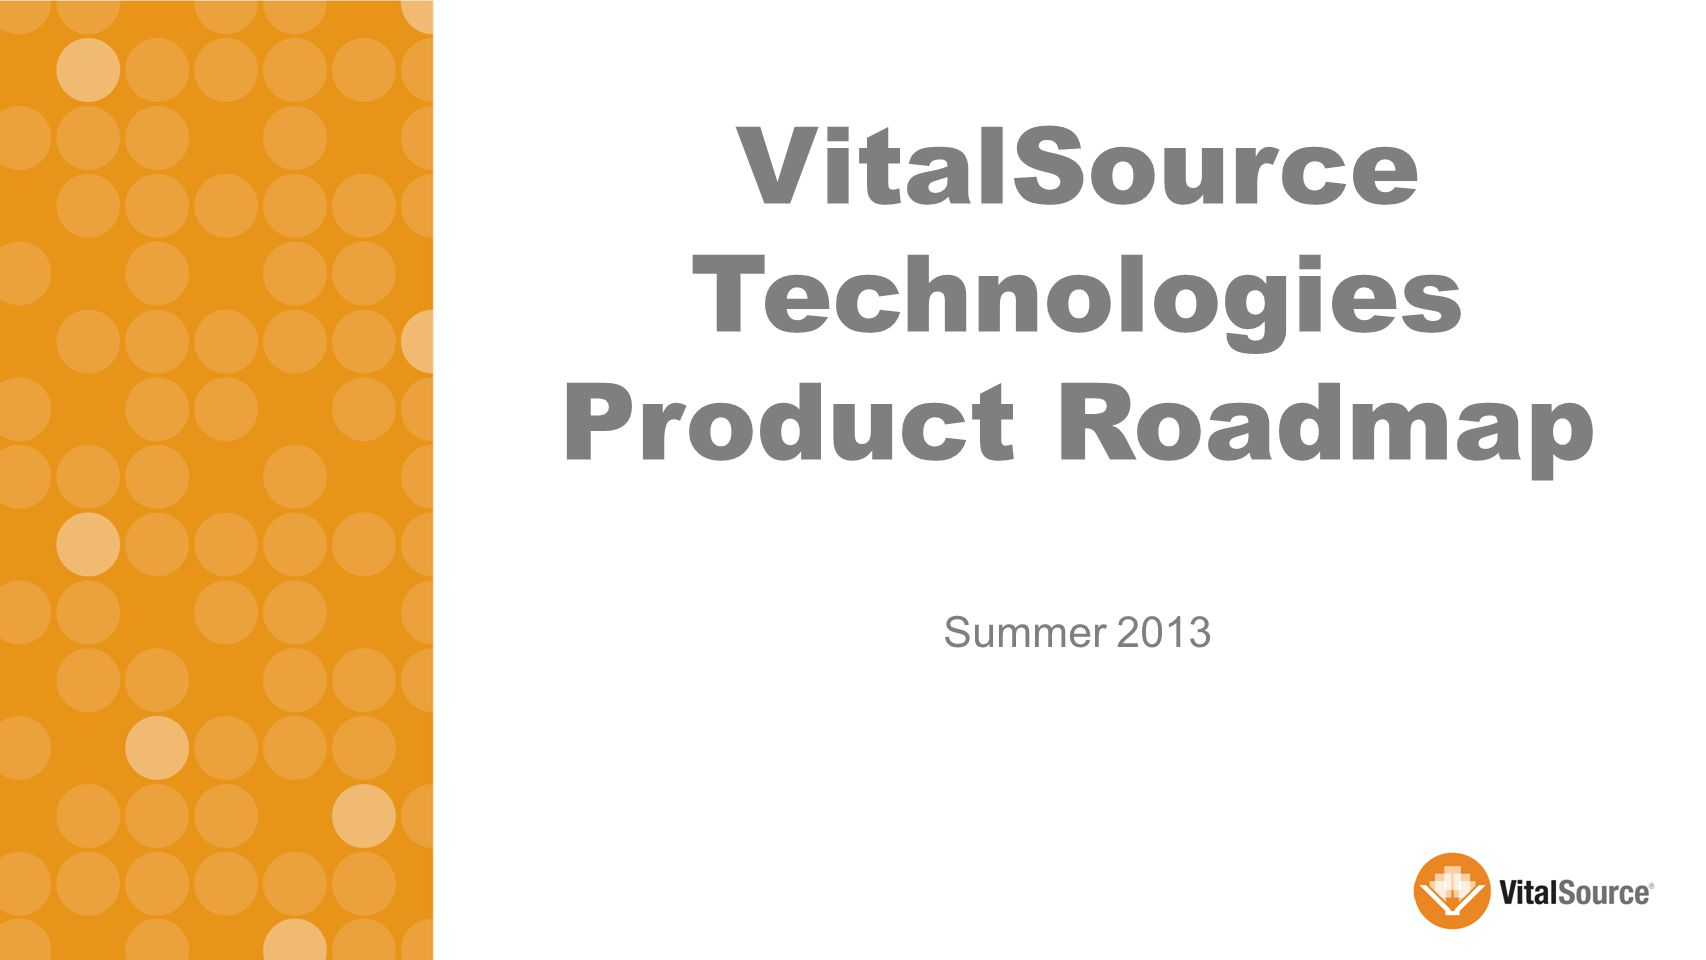 2 THE WORLD ' S LEADING E-TEXTBOOK PLATFORM VITALSOURCE